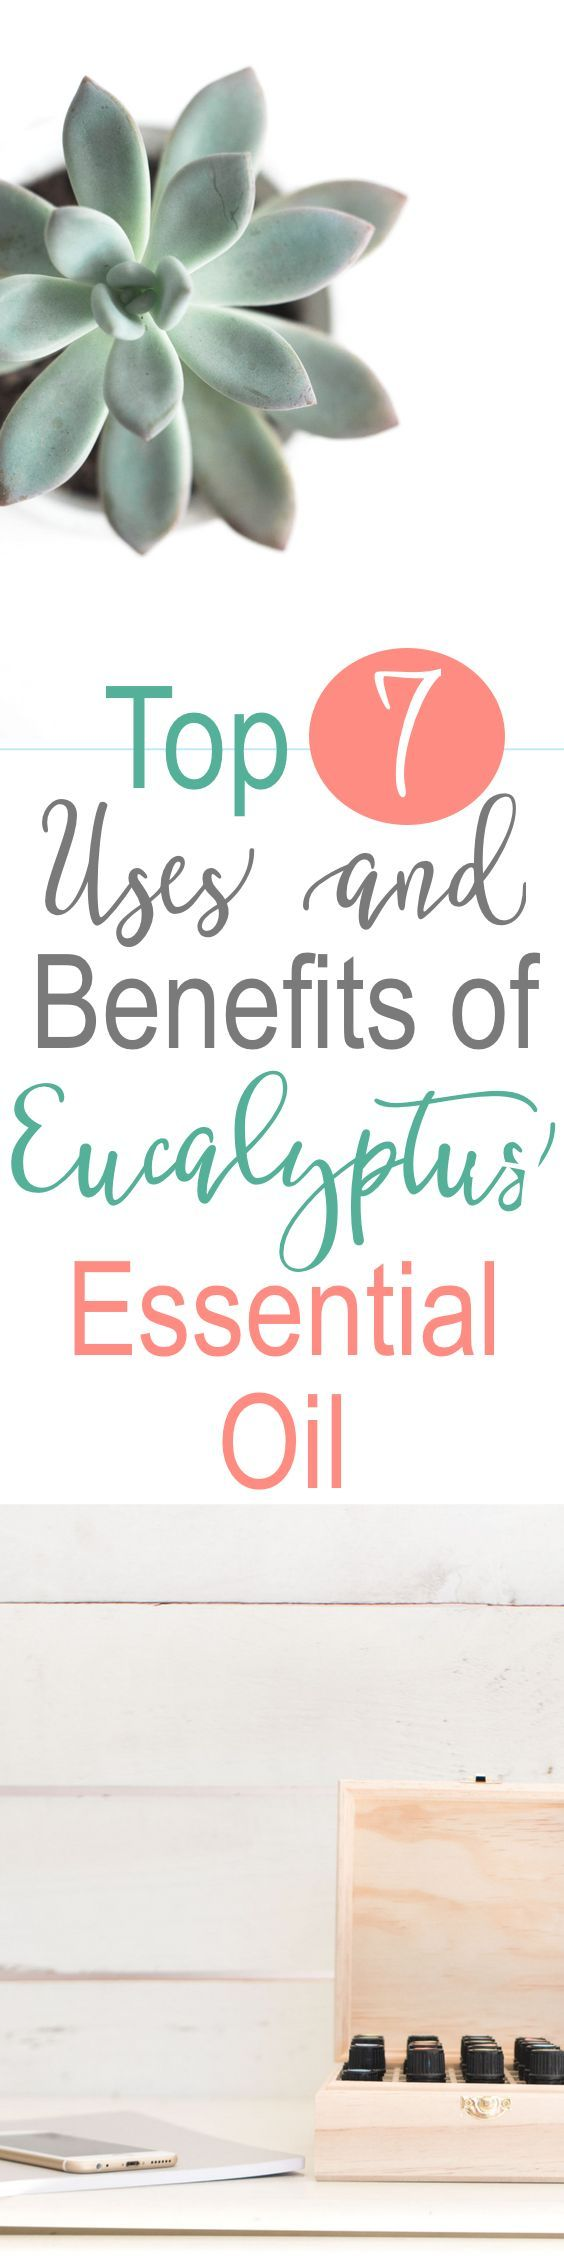 Eucalyptus essential oil has so many great uses and benefits. The broad range of health benefits of this oil come from the organic chemical compound cineole. Here are the top 10 eucalyptus essential oil uses! Also, find out which essential oils blend well with Eucalyptus when creating your own diffuser blends and essential oil recipes!✨\\ www.simplyreeni.com